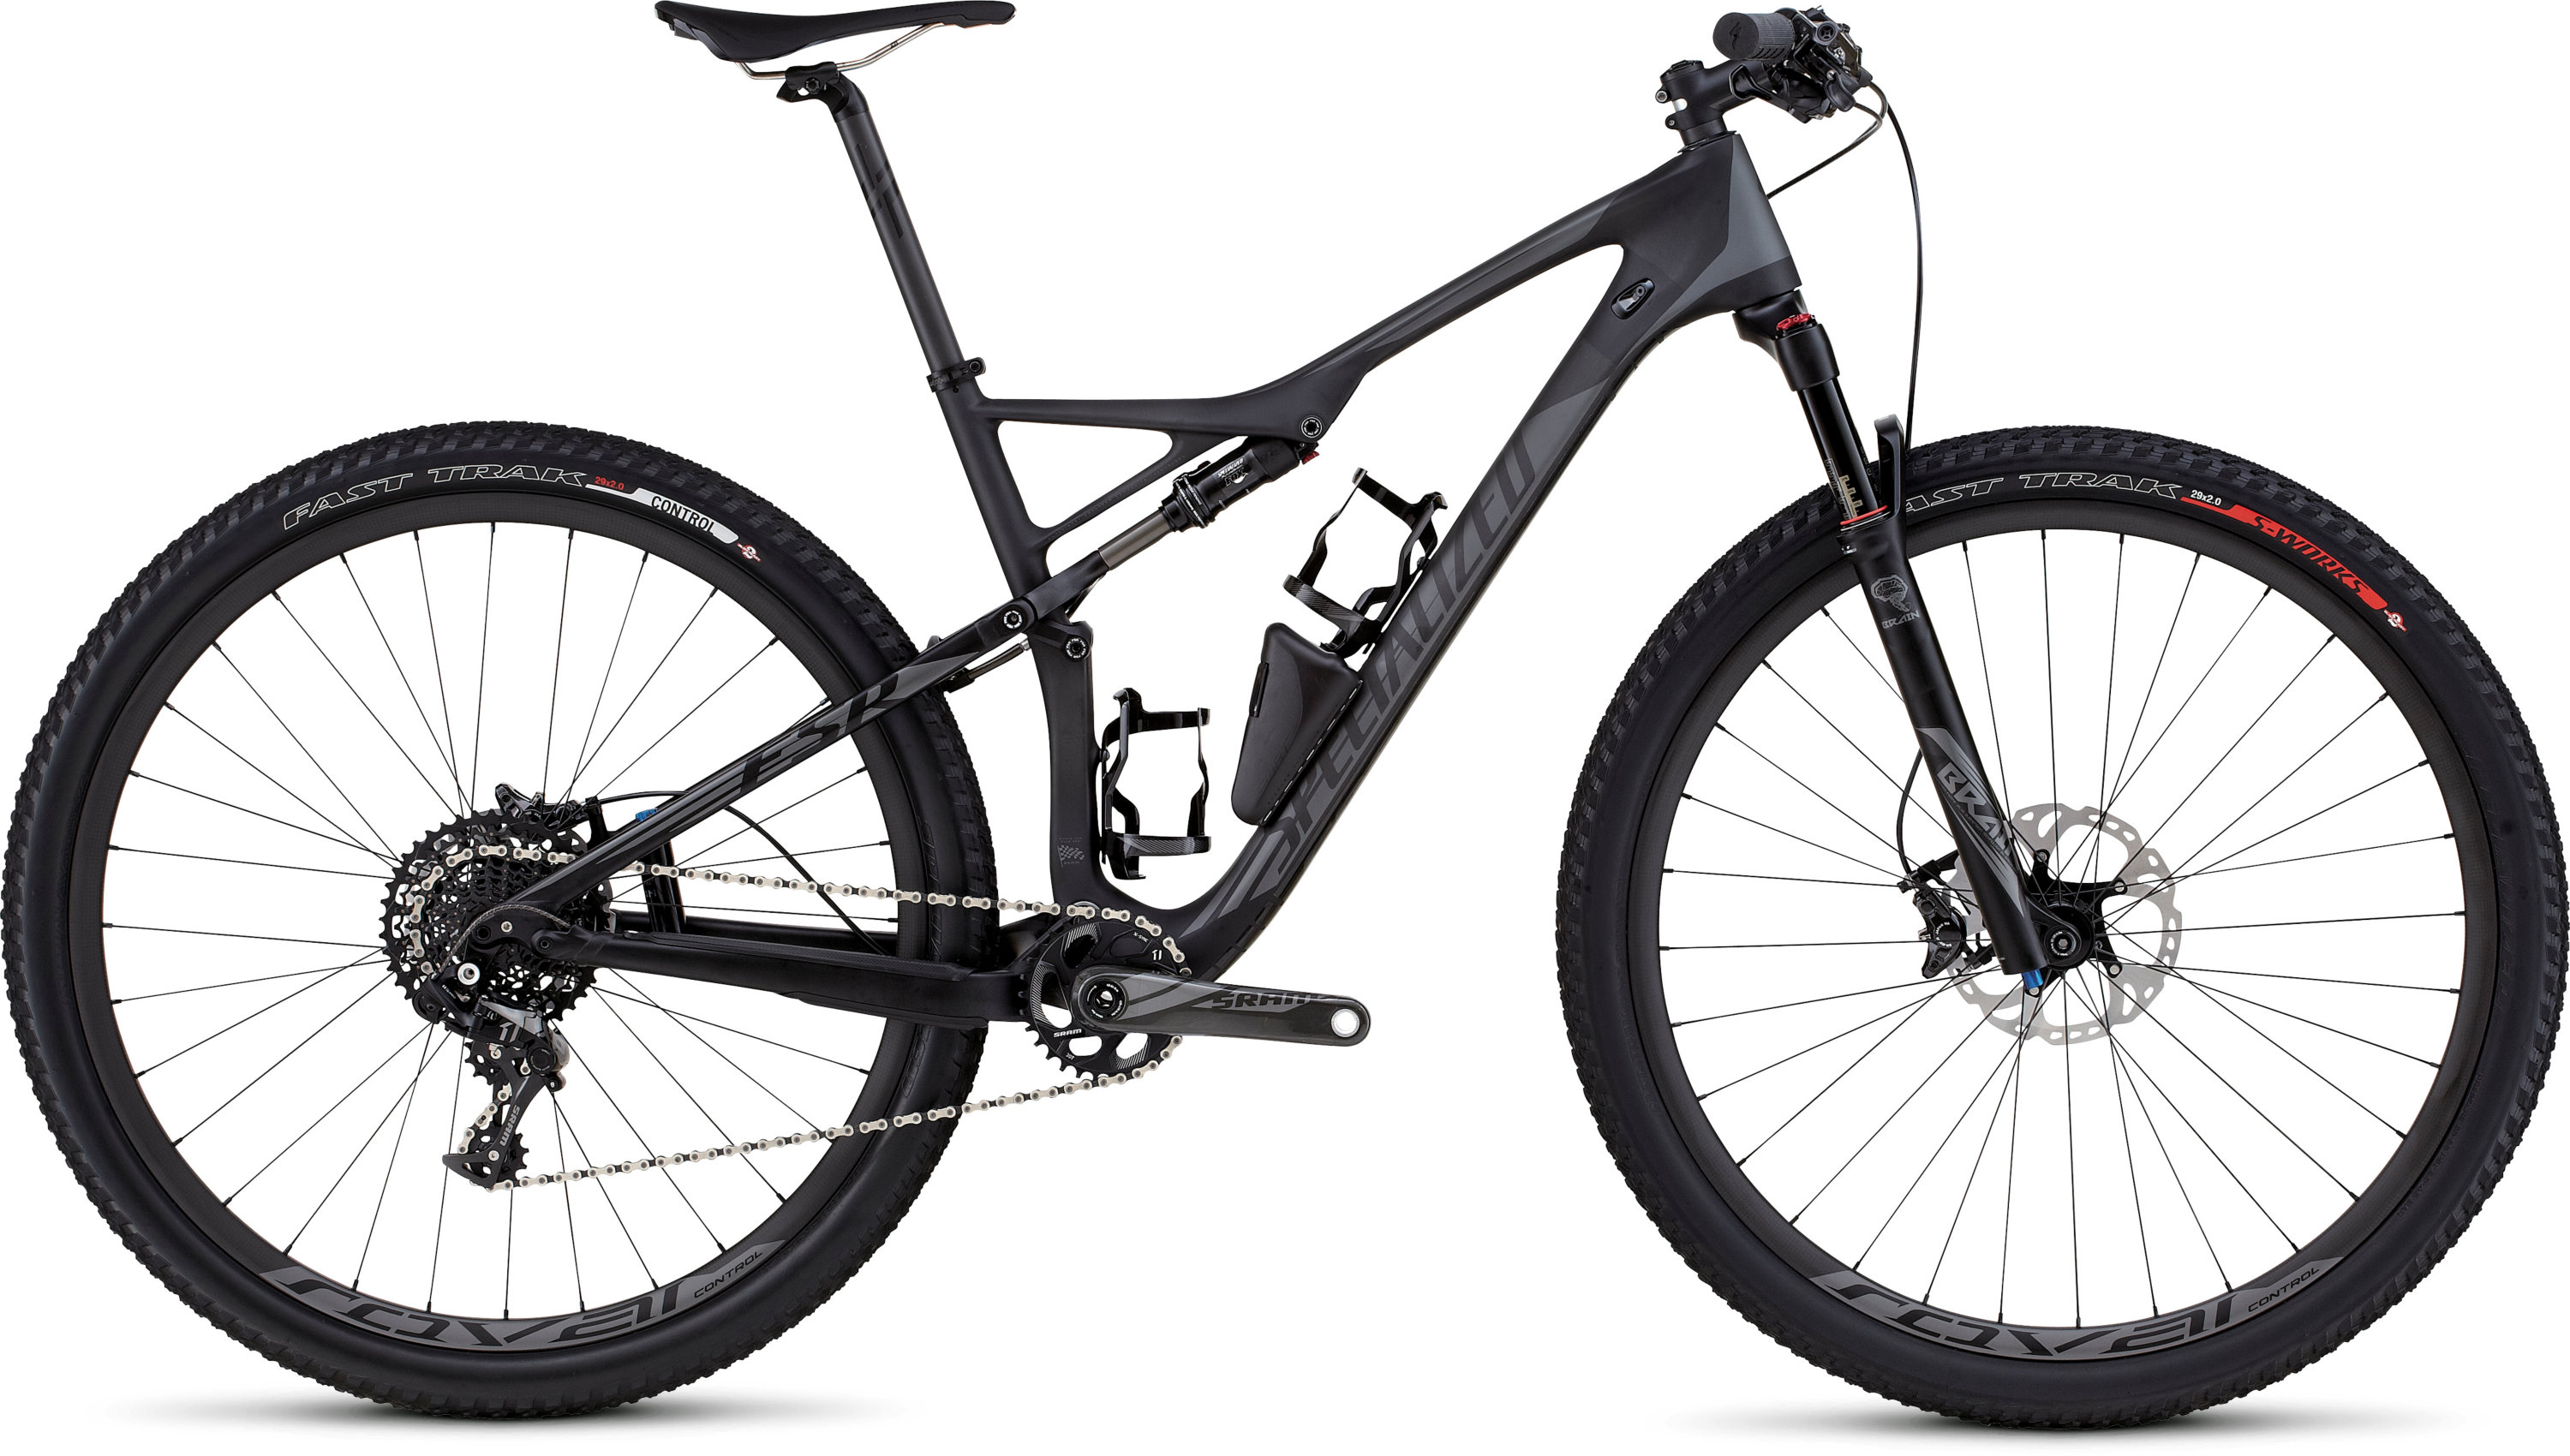 SPECIALIZED EPIC FSR EXPERT CARBON WC 29 CARB/CHAR M - SPECIALIZED EPIC FSR EXPERT CARBON WC 29 CARB/CHAR M